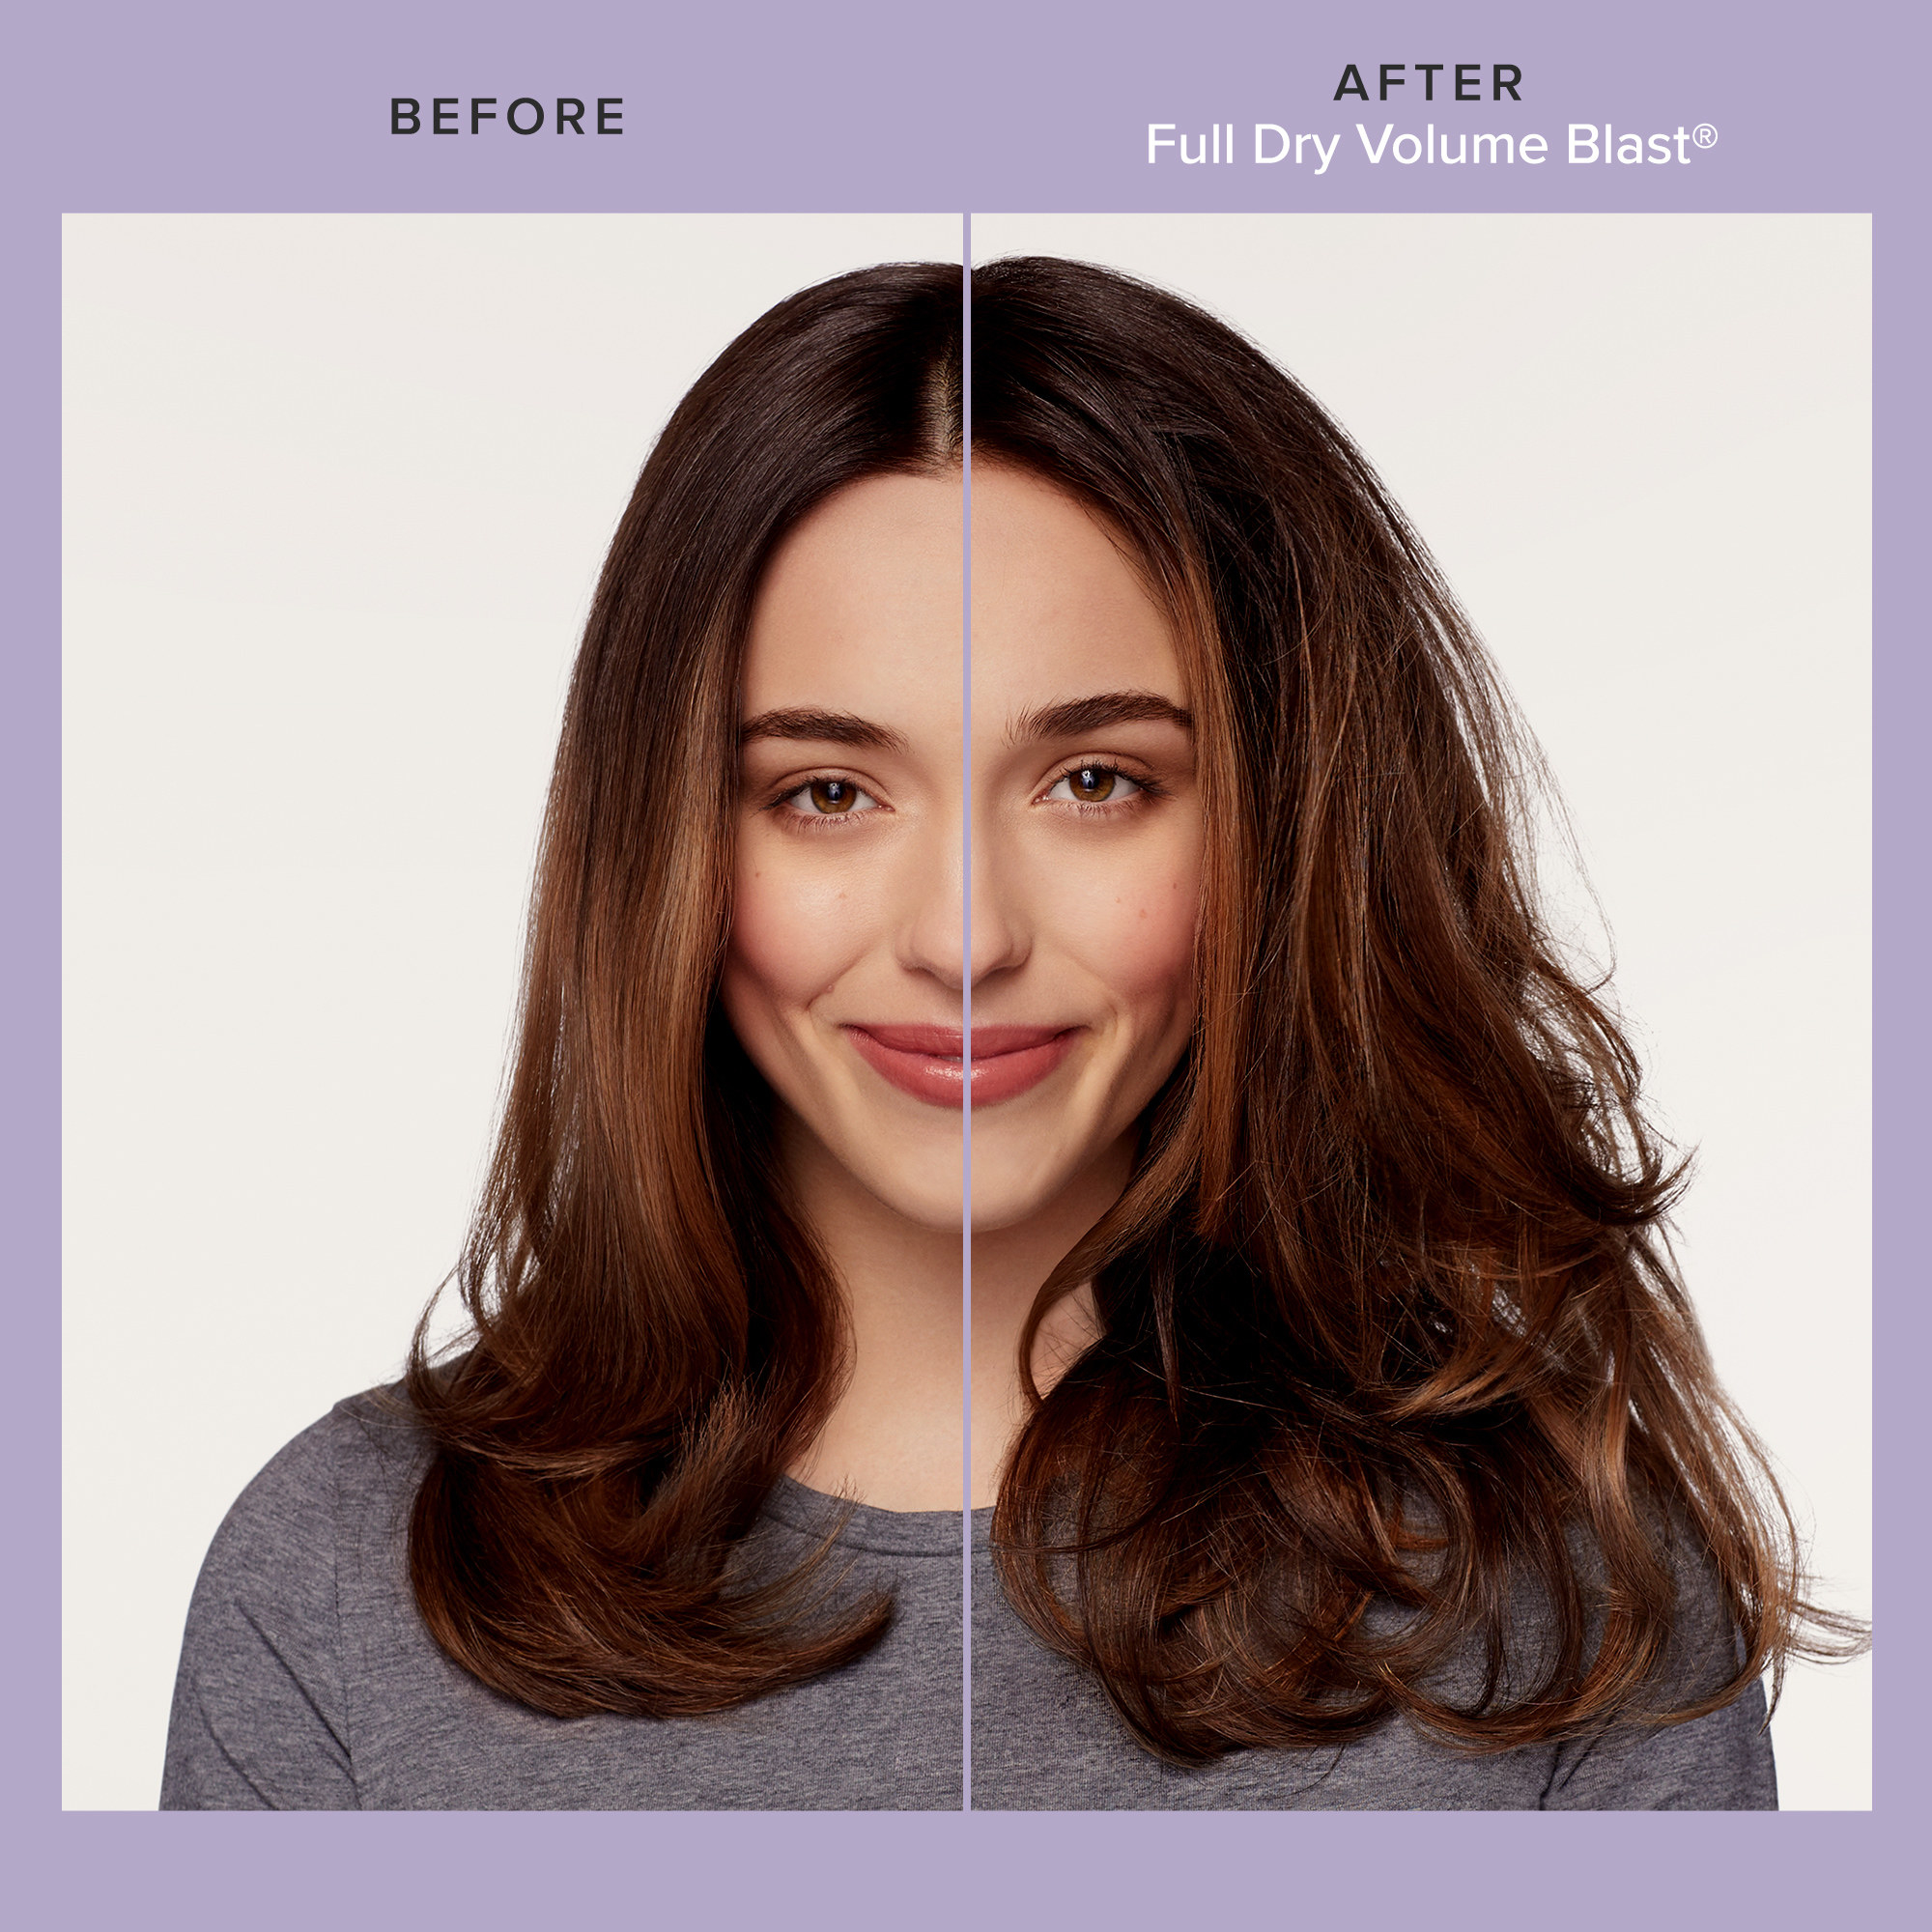 Split image of model before and after using the full dry volume blast with much fuller, thicker-looking hair